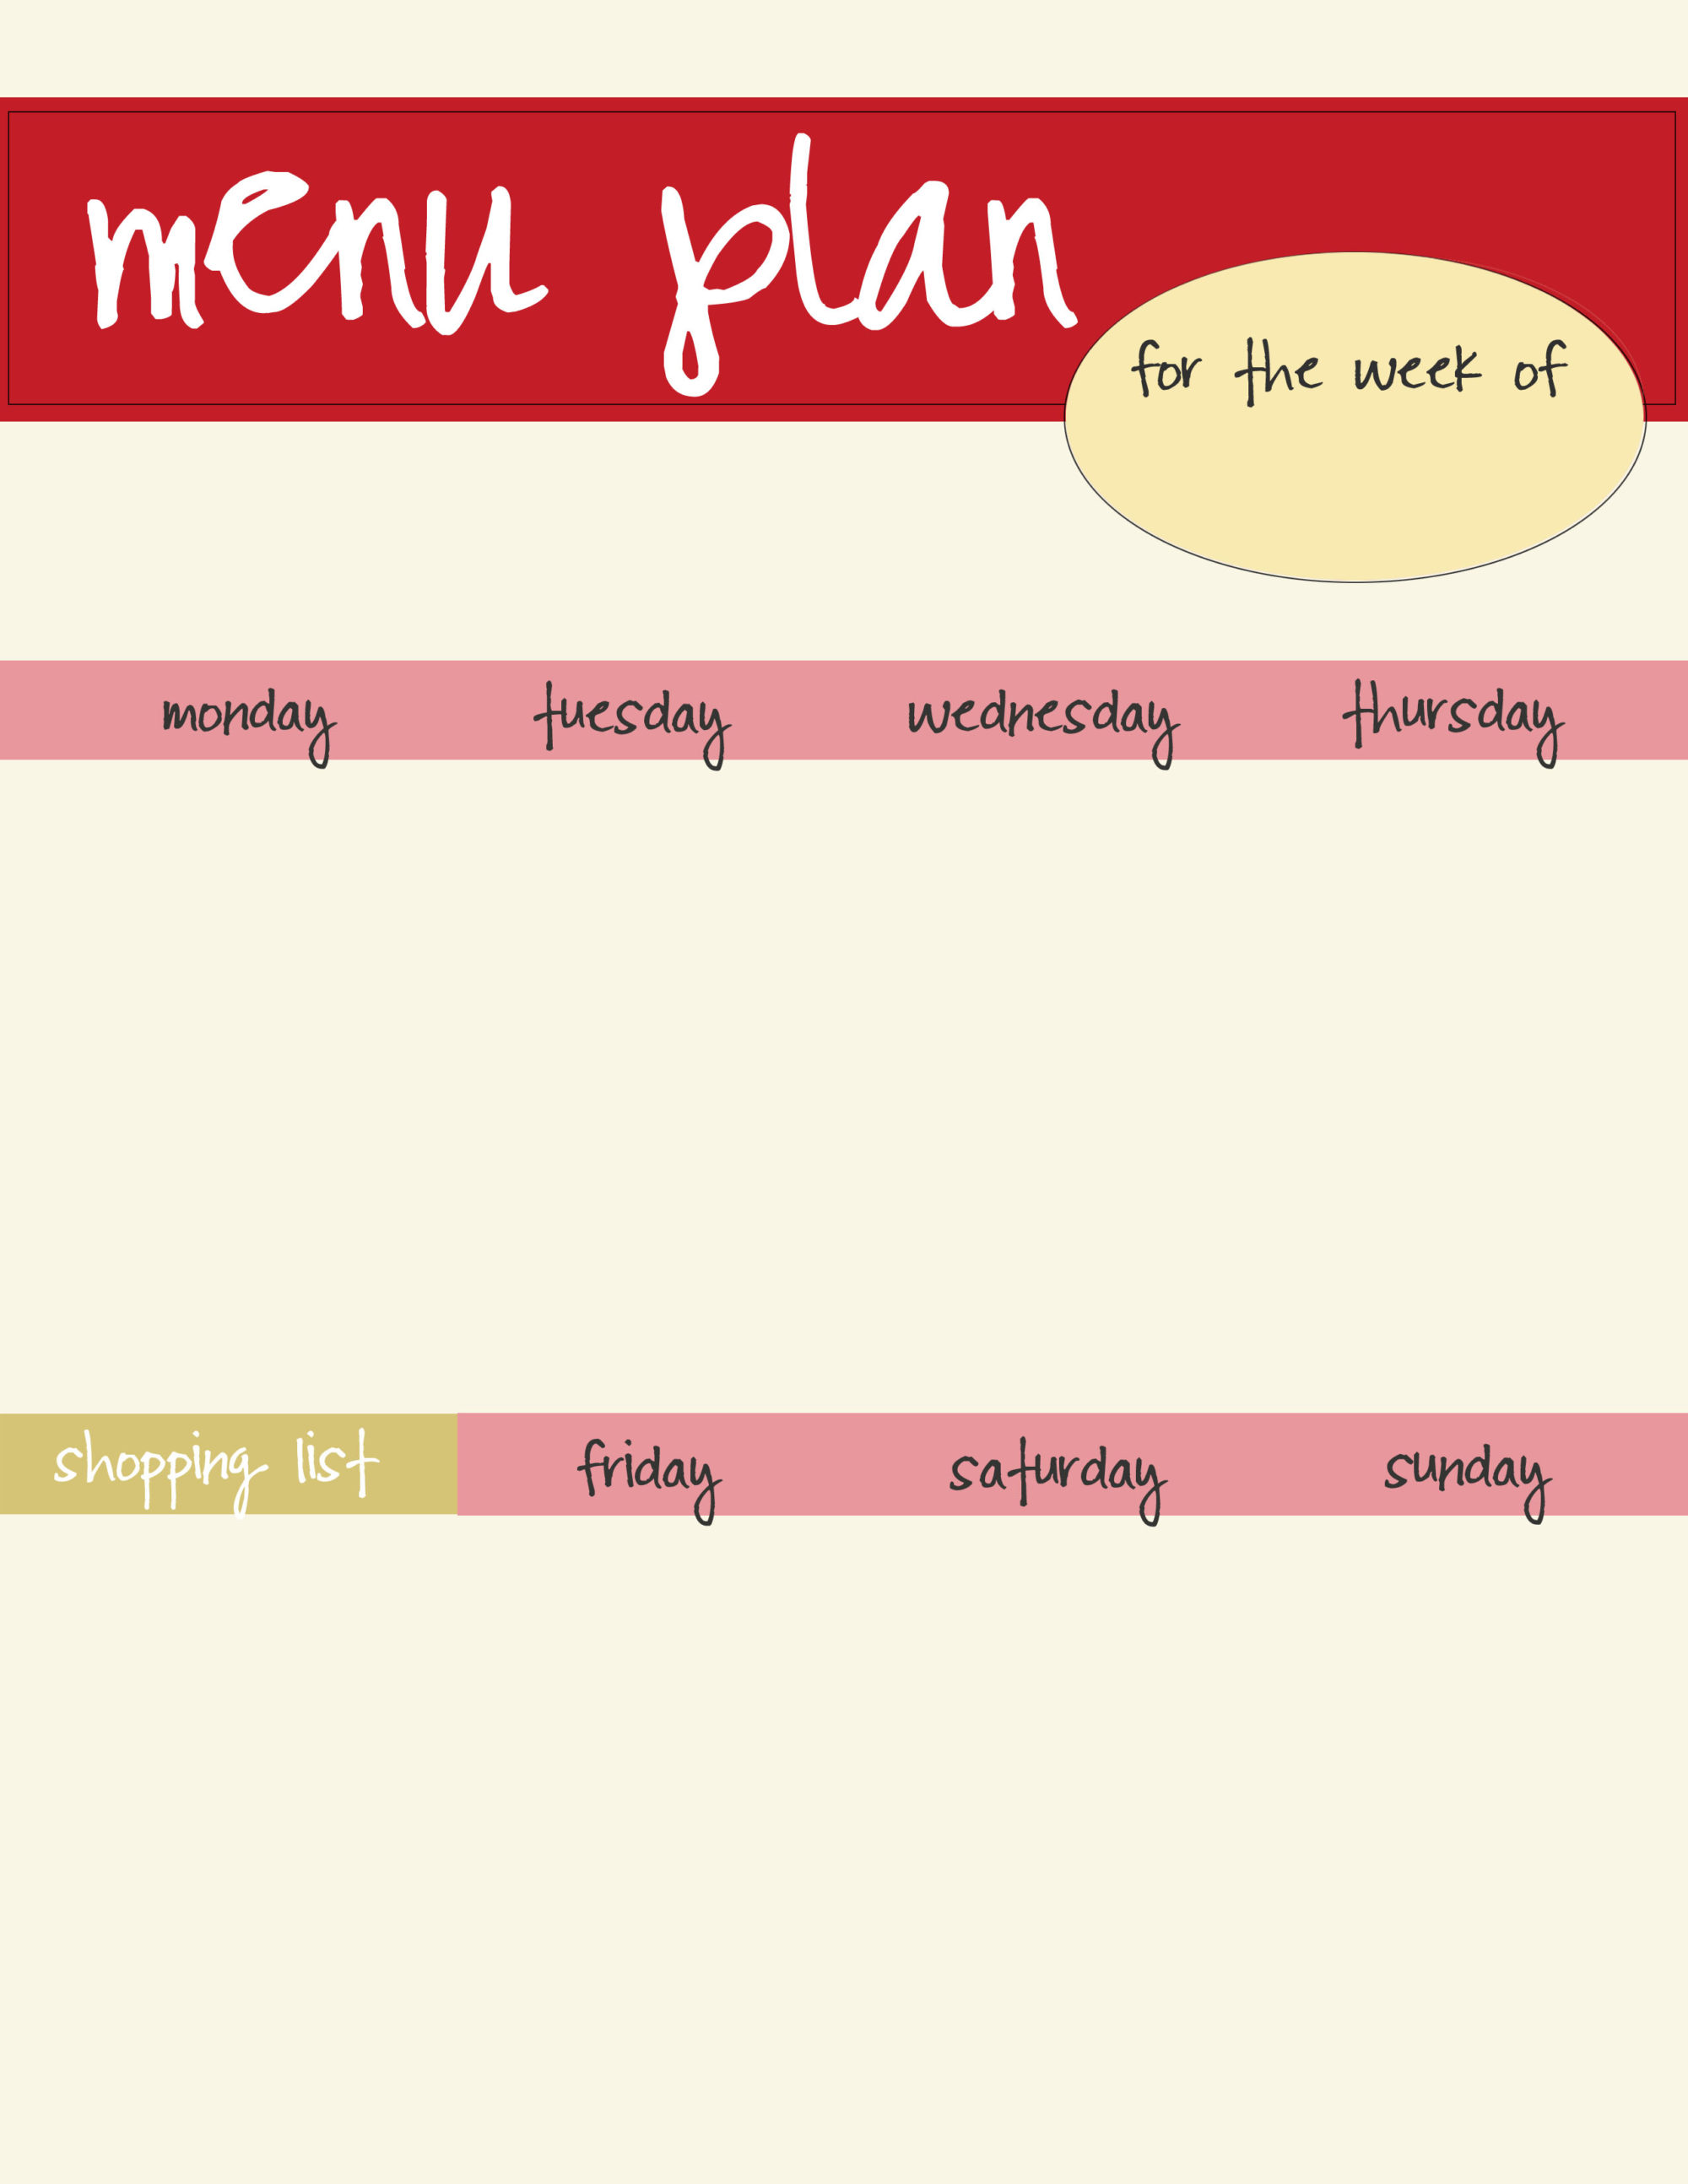 Free Red Menu Planner Printable